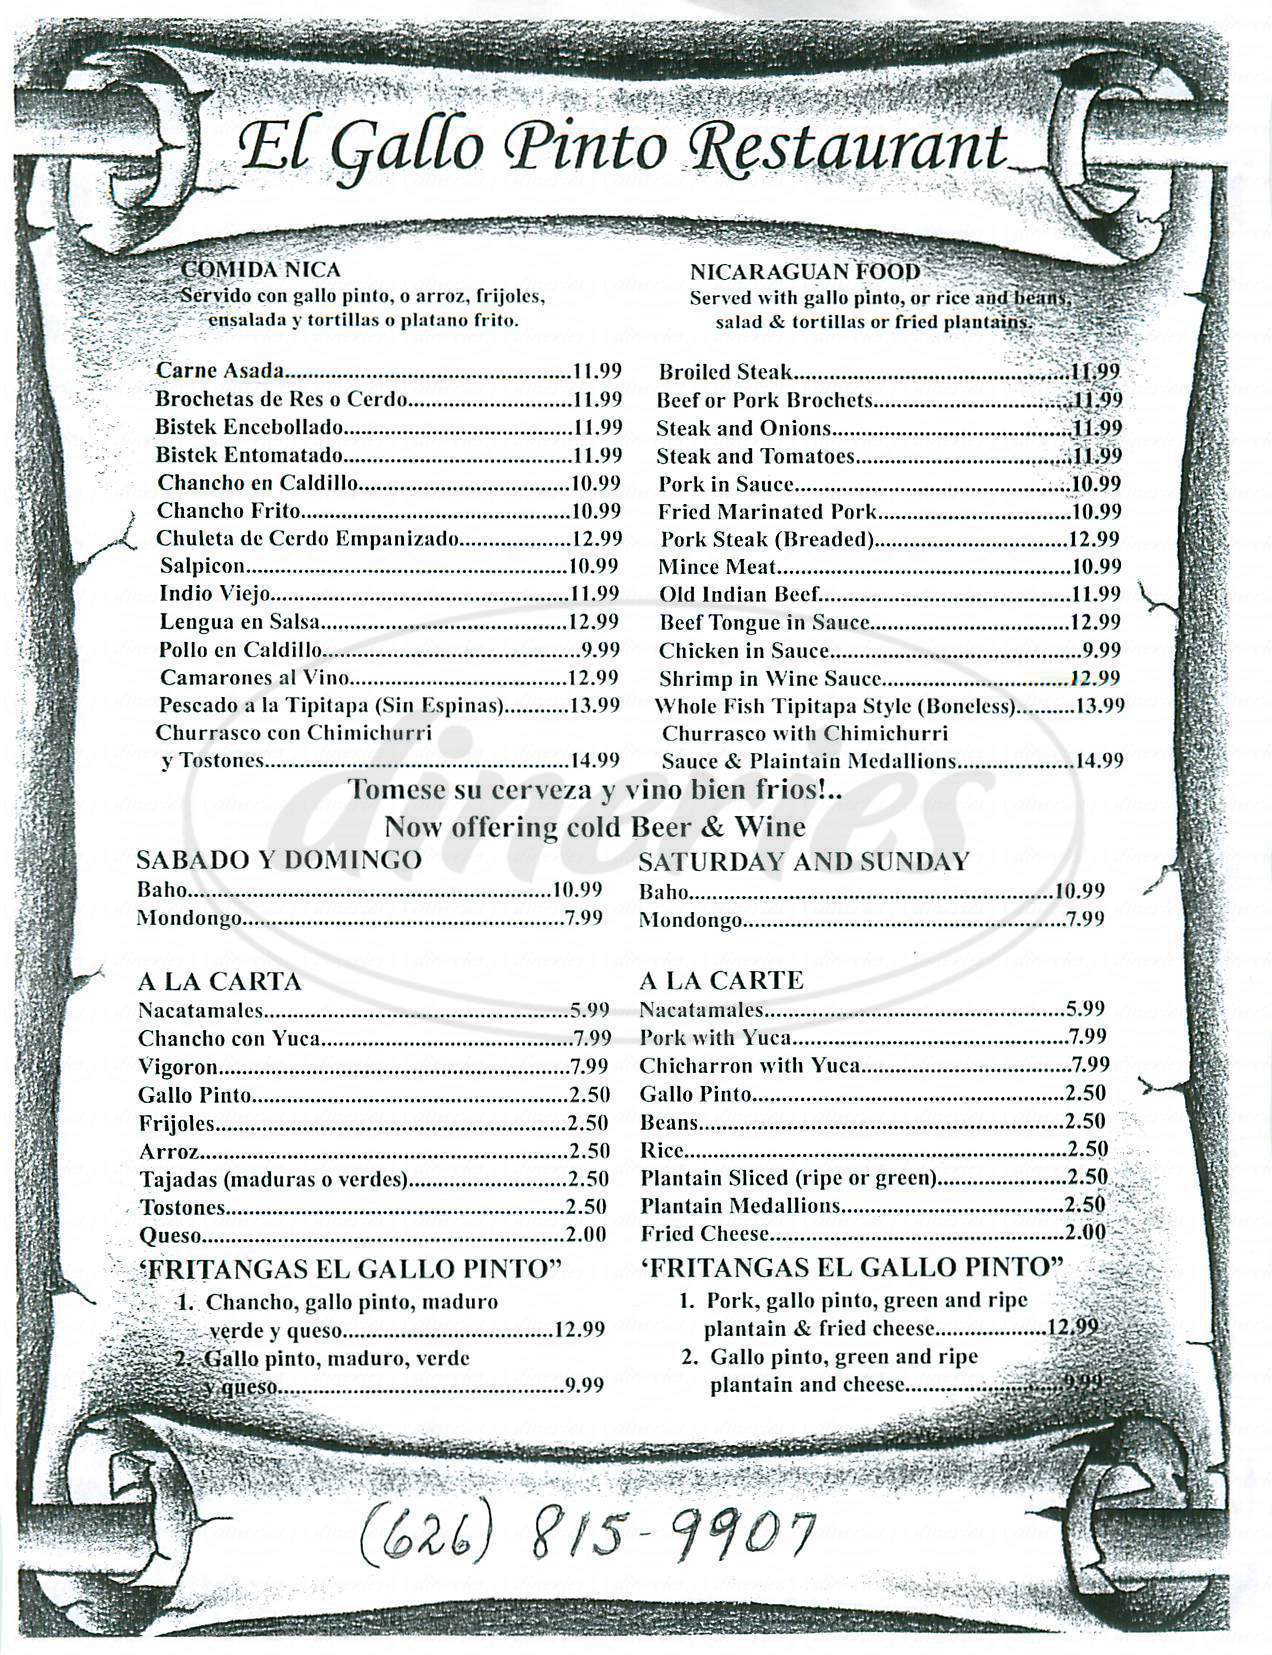 menu for El Gallo Pinto